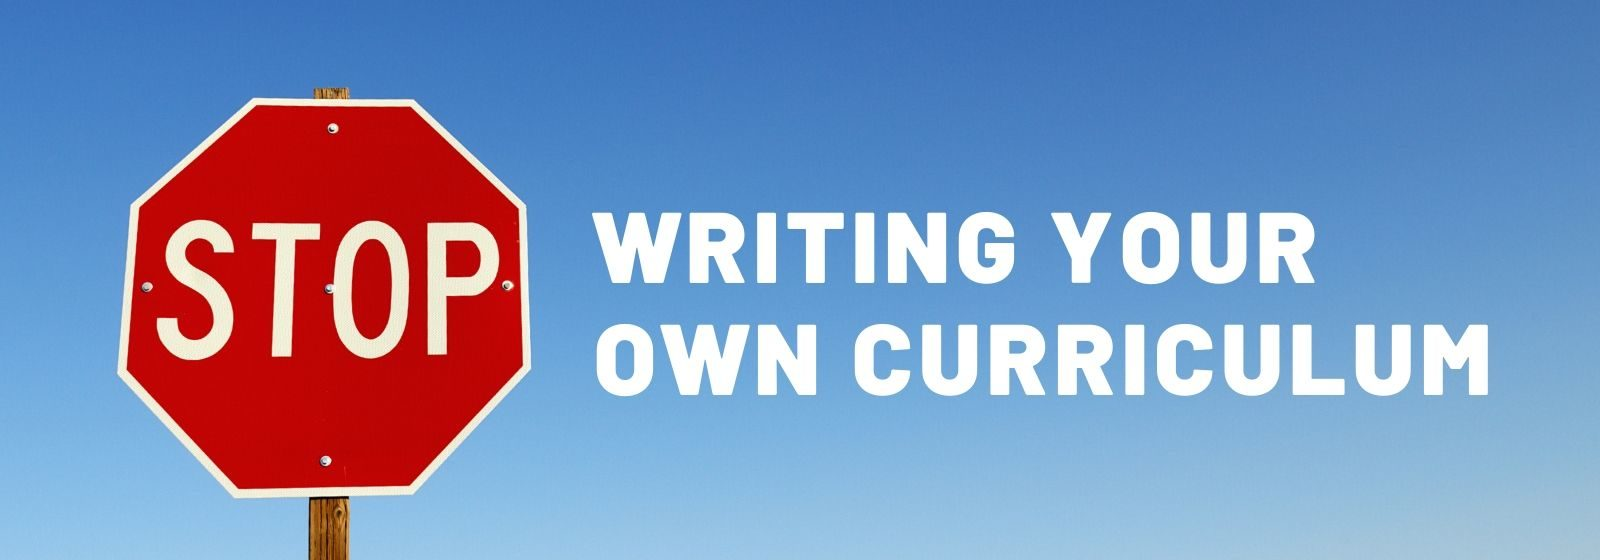 stop writing your own curriculum